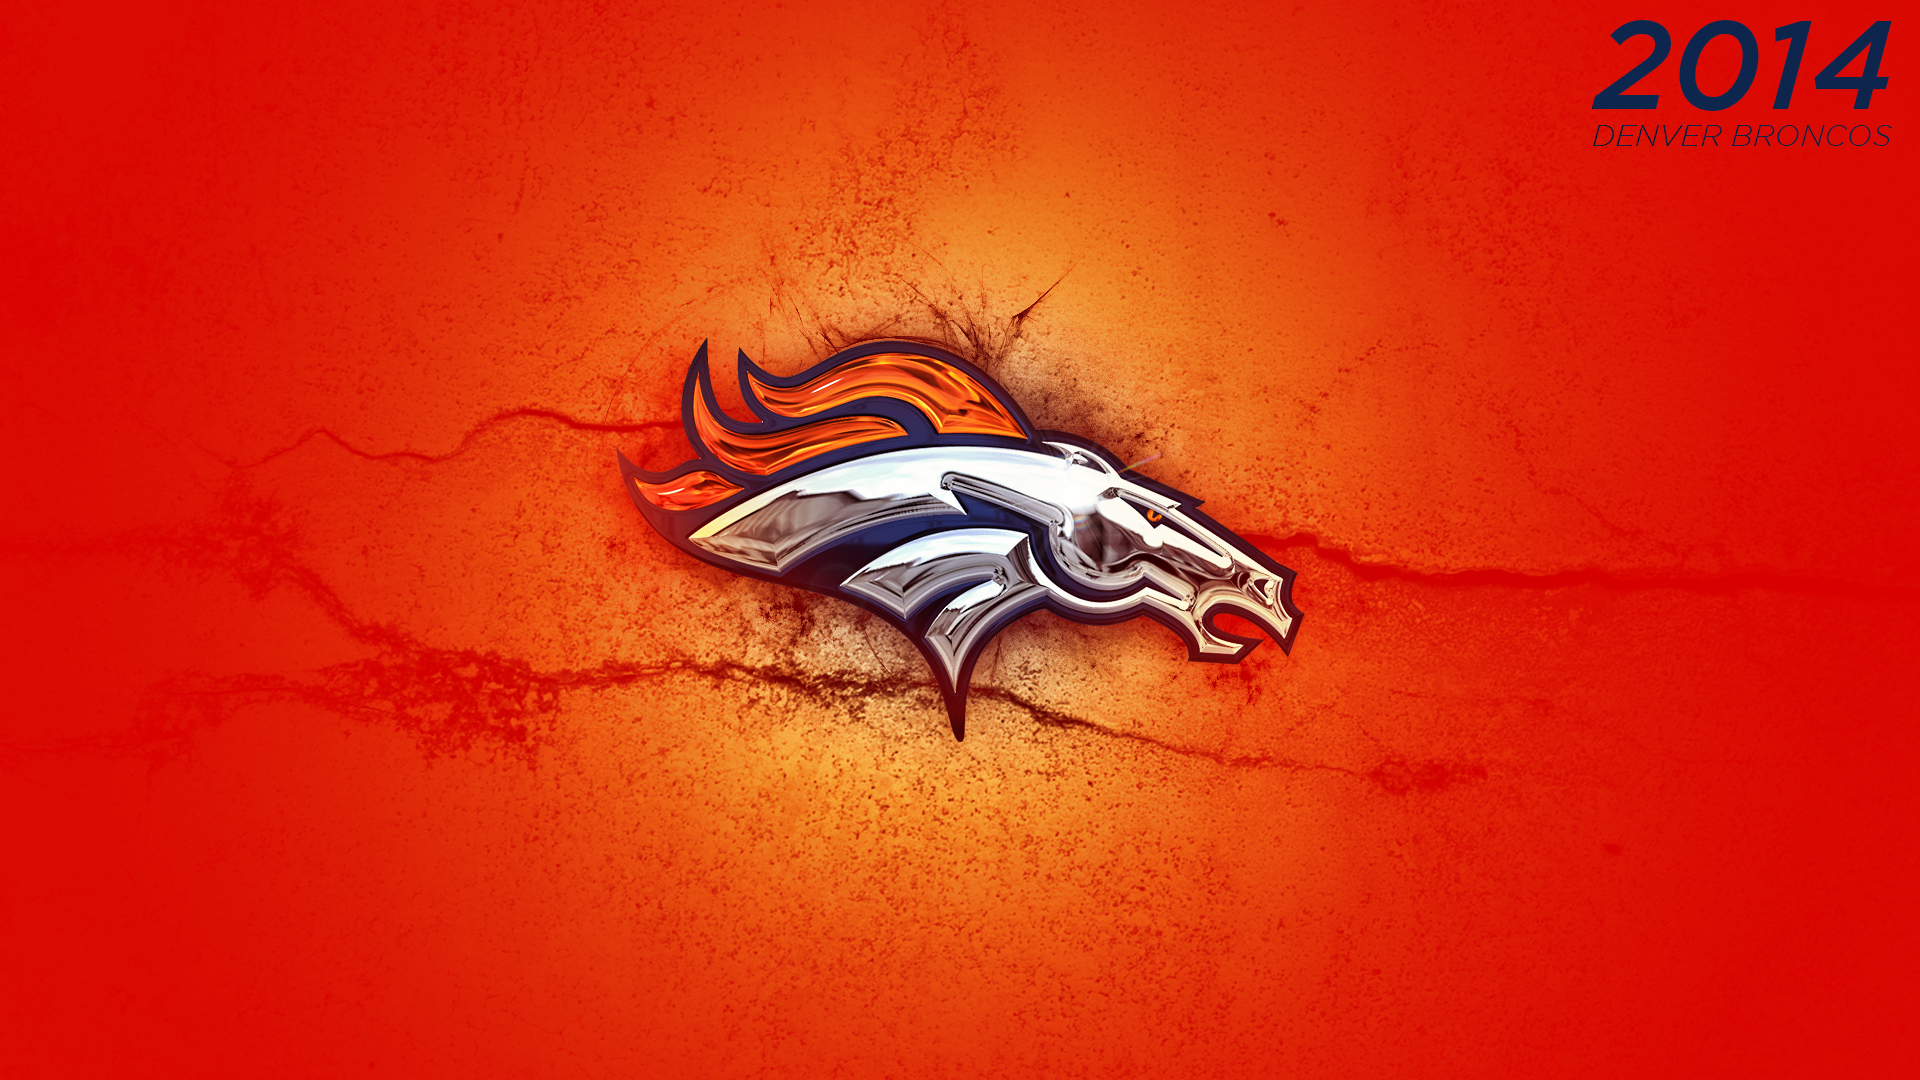 Orange 2014 Denver Broncos Wallpaper by DenverSportsWalls Orange 2014 Denver Broncos Wallpaper by DenverSportsWalls